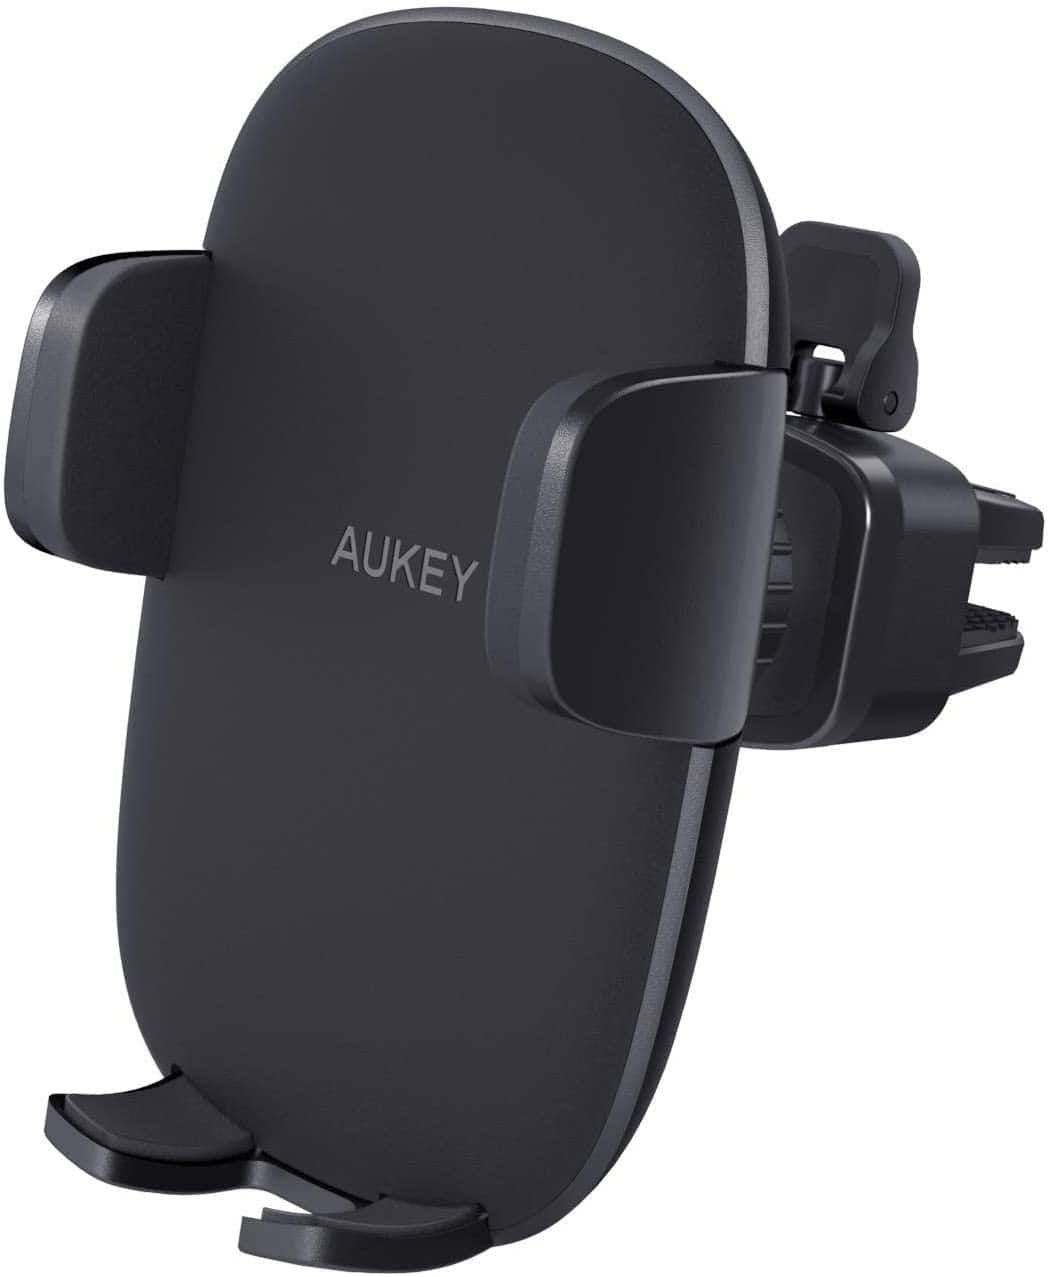 Aukey Car Air Vent Cell Phone Holder